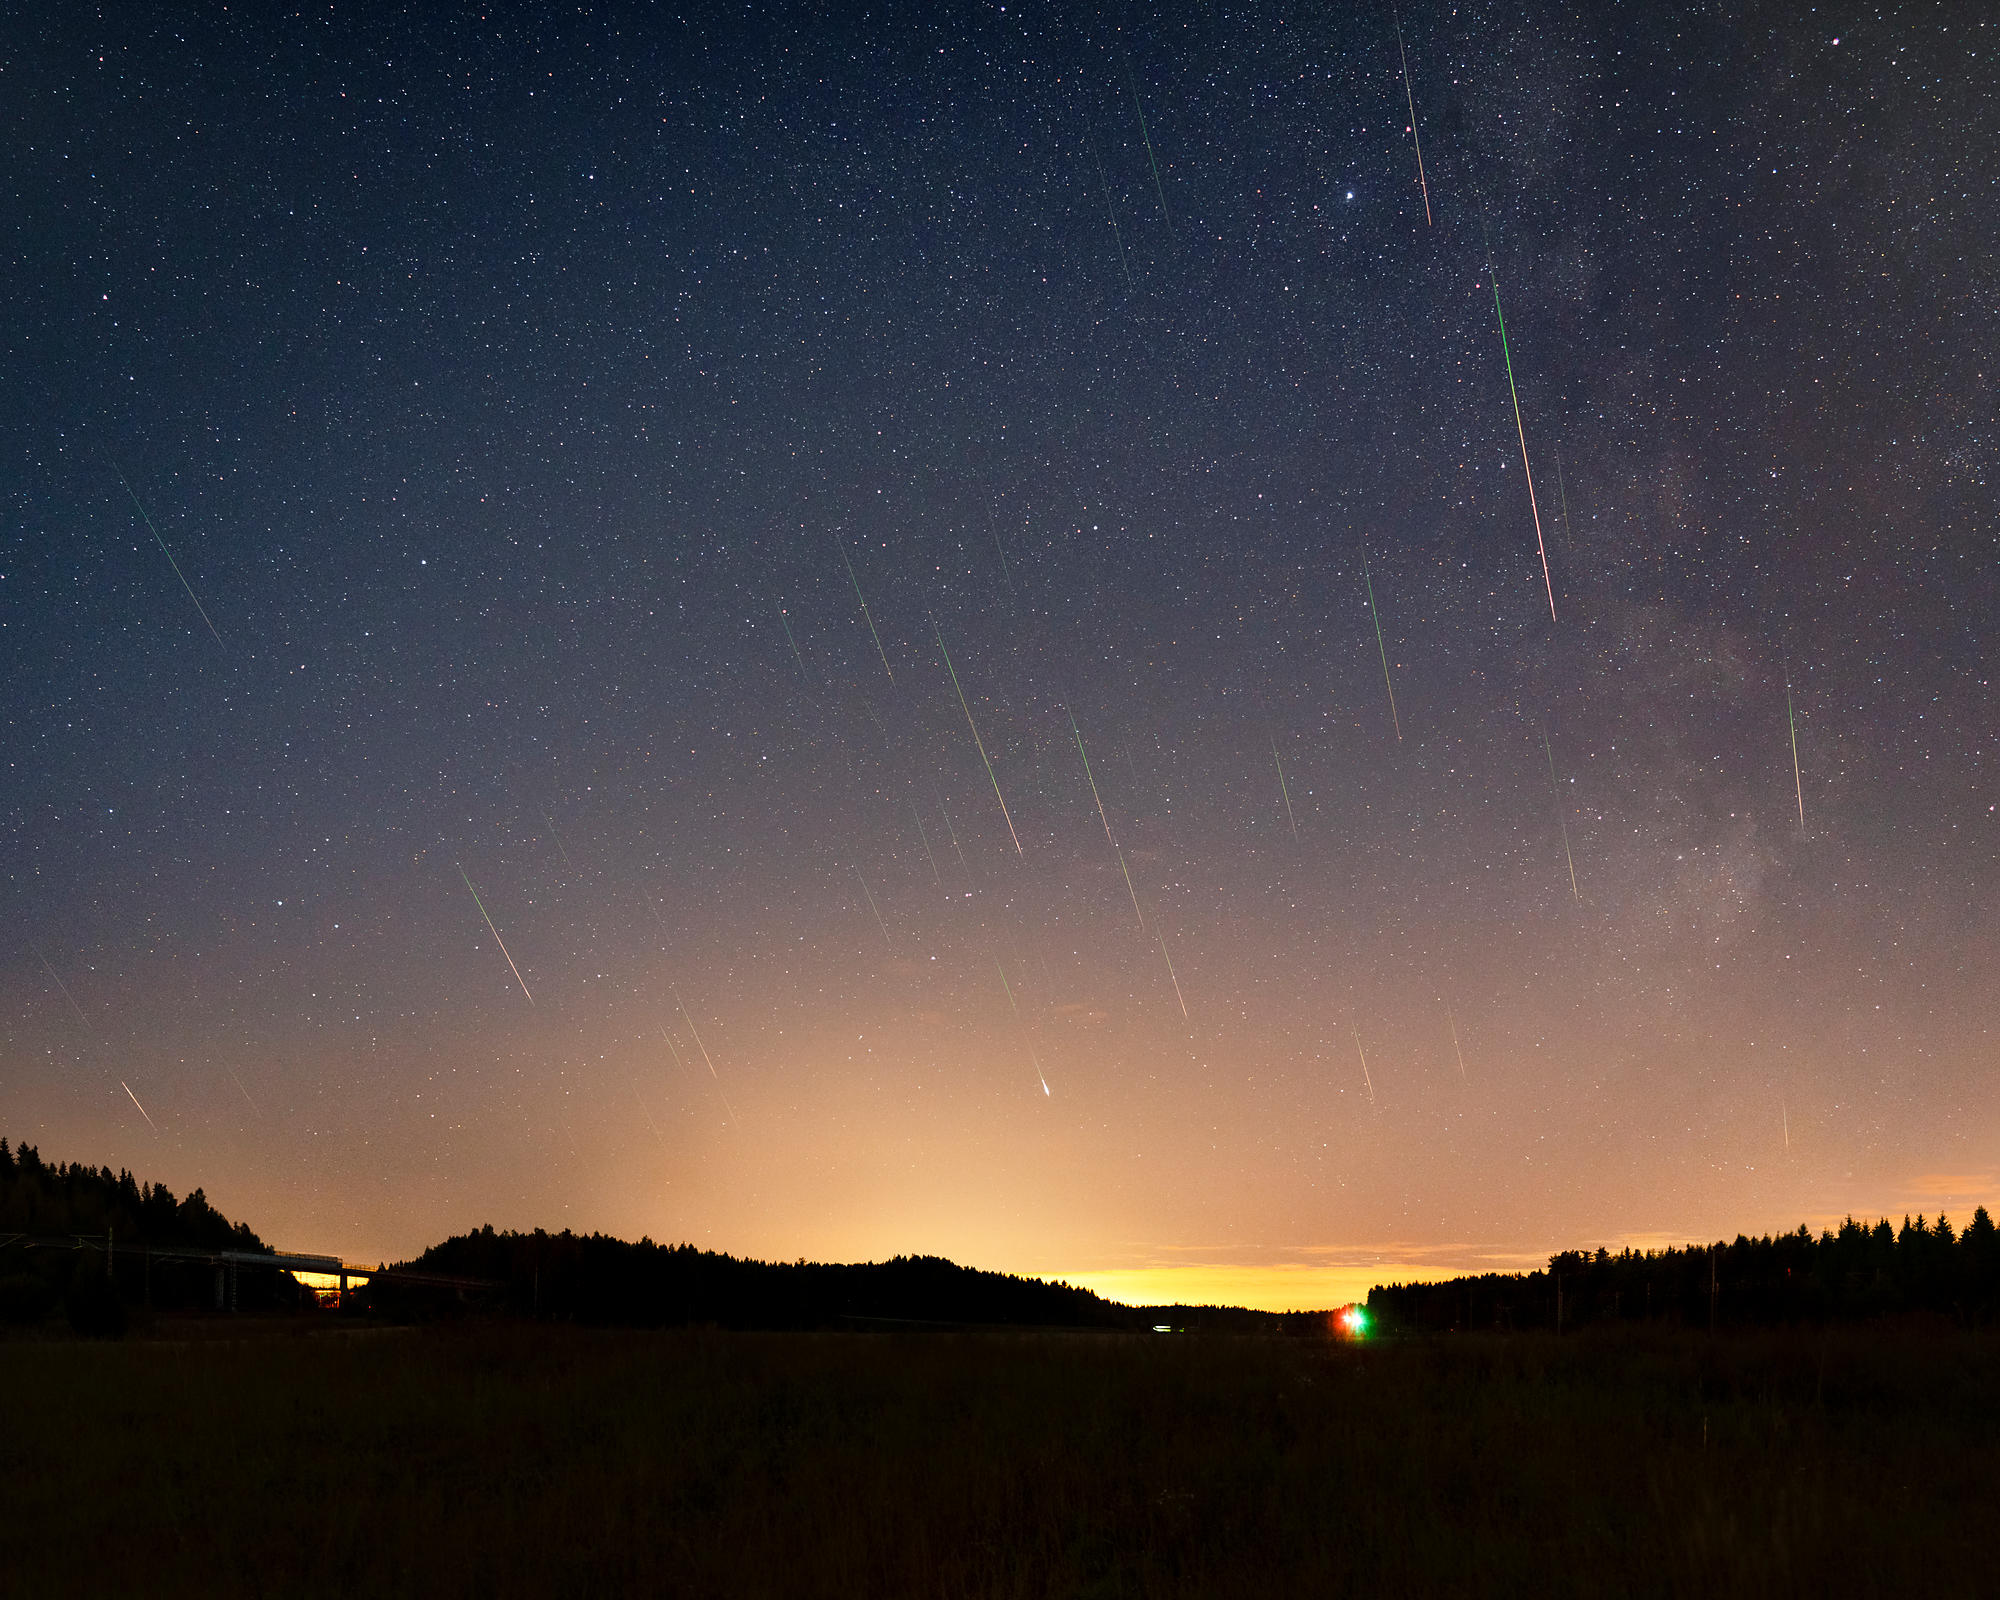 40 Perseids above the landscape in Southern Finland on August 14 2018. Composite image photographed between 01.17 and 02.06. ...